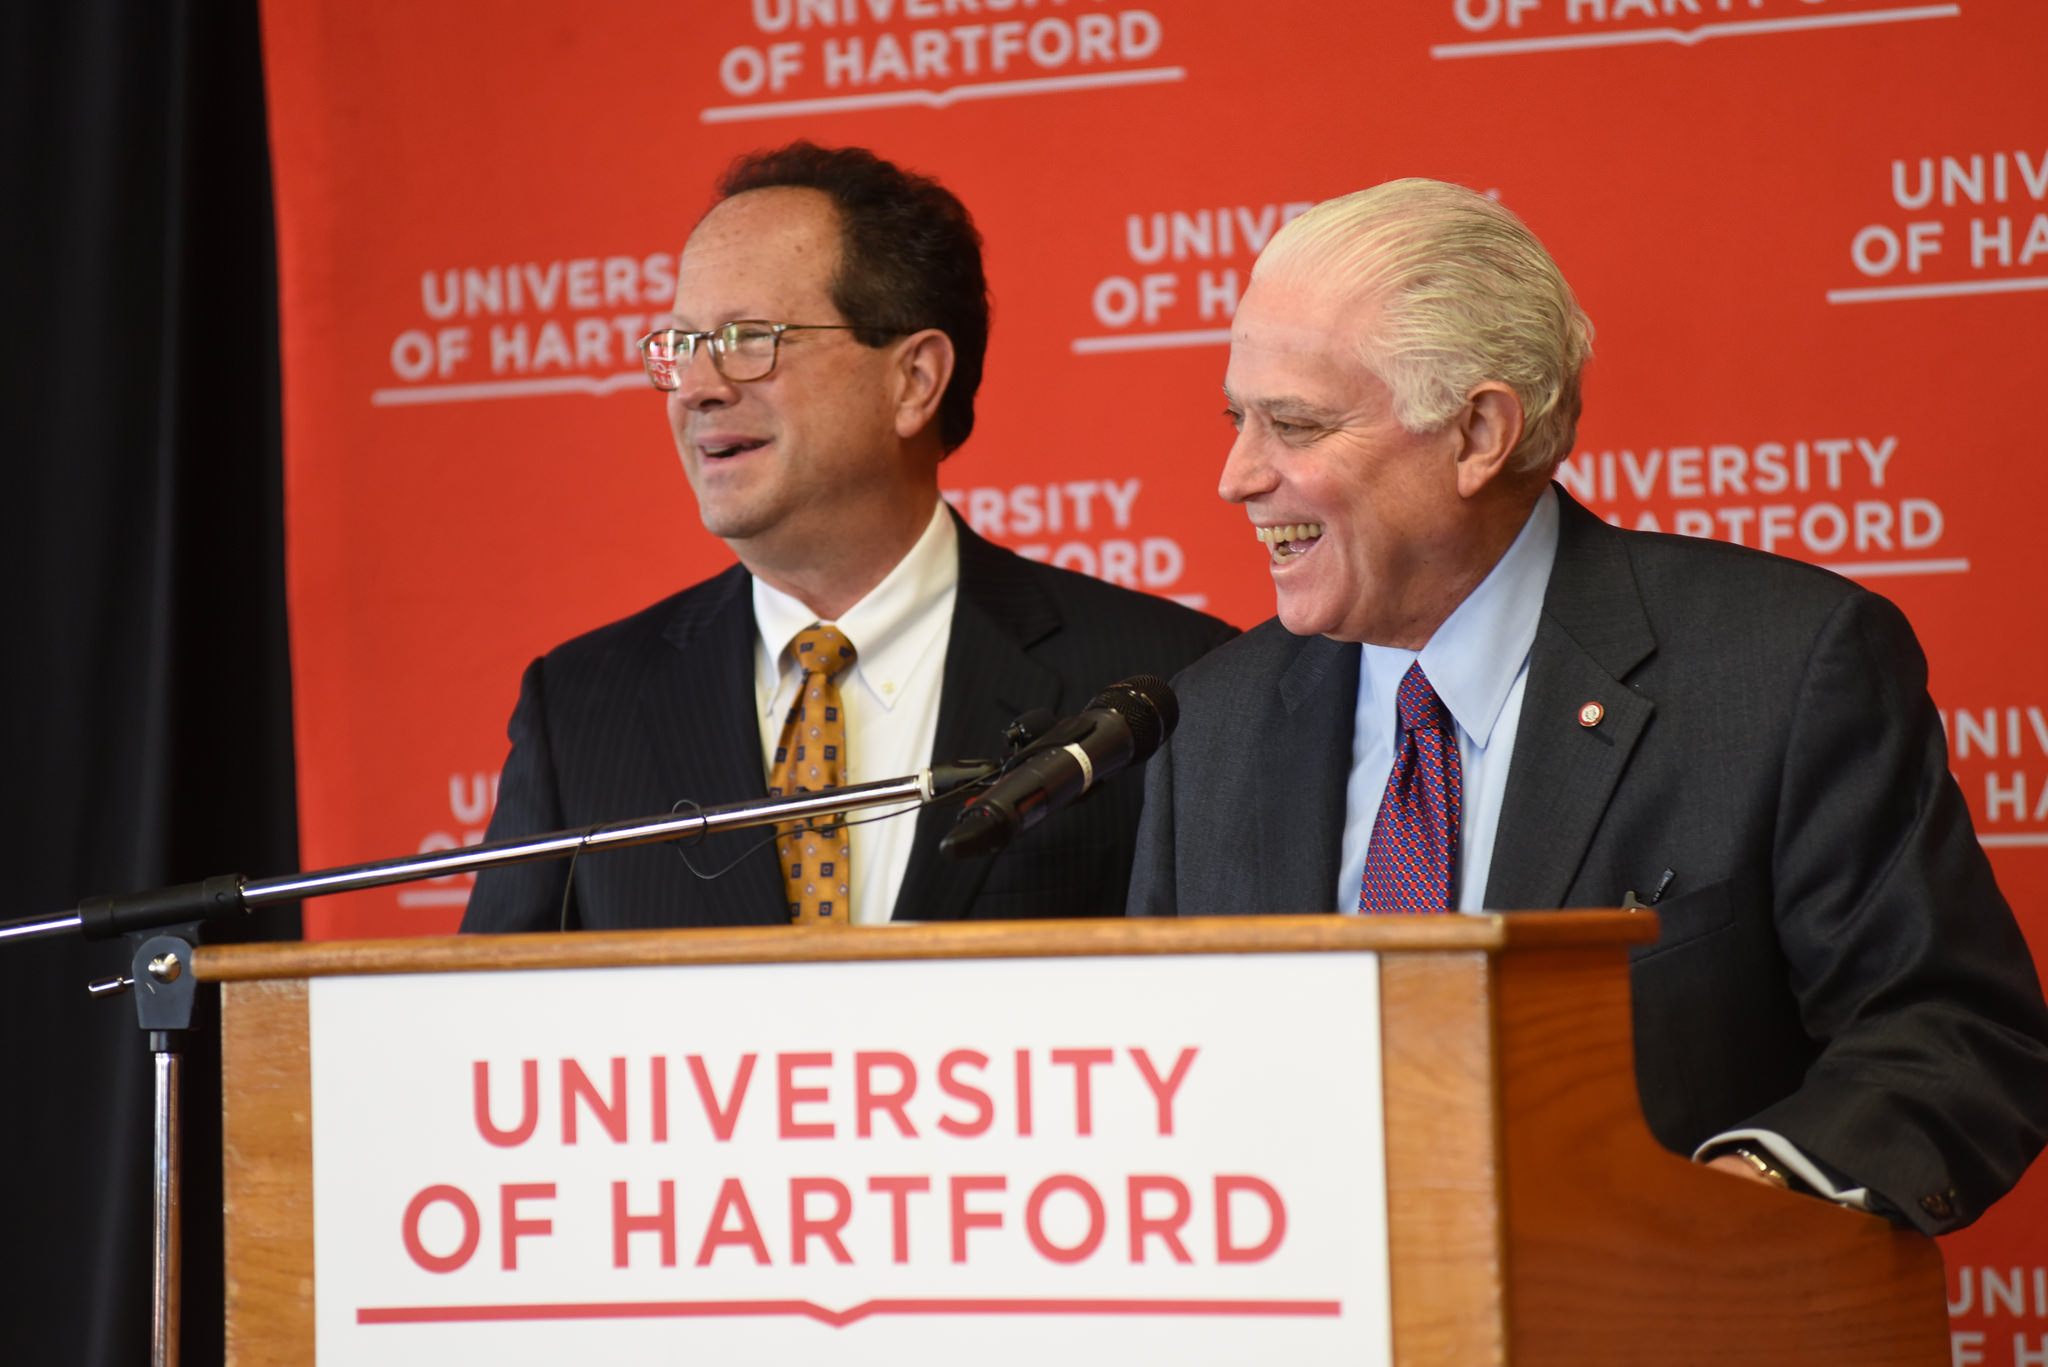 The New President of University of Hartford